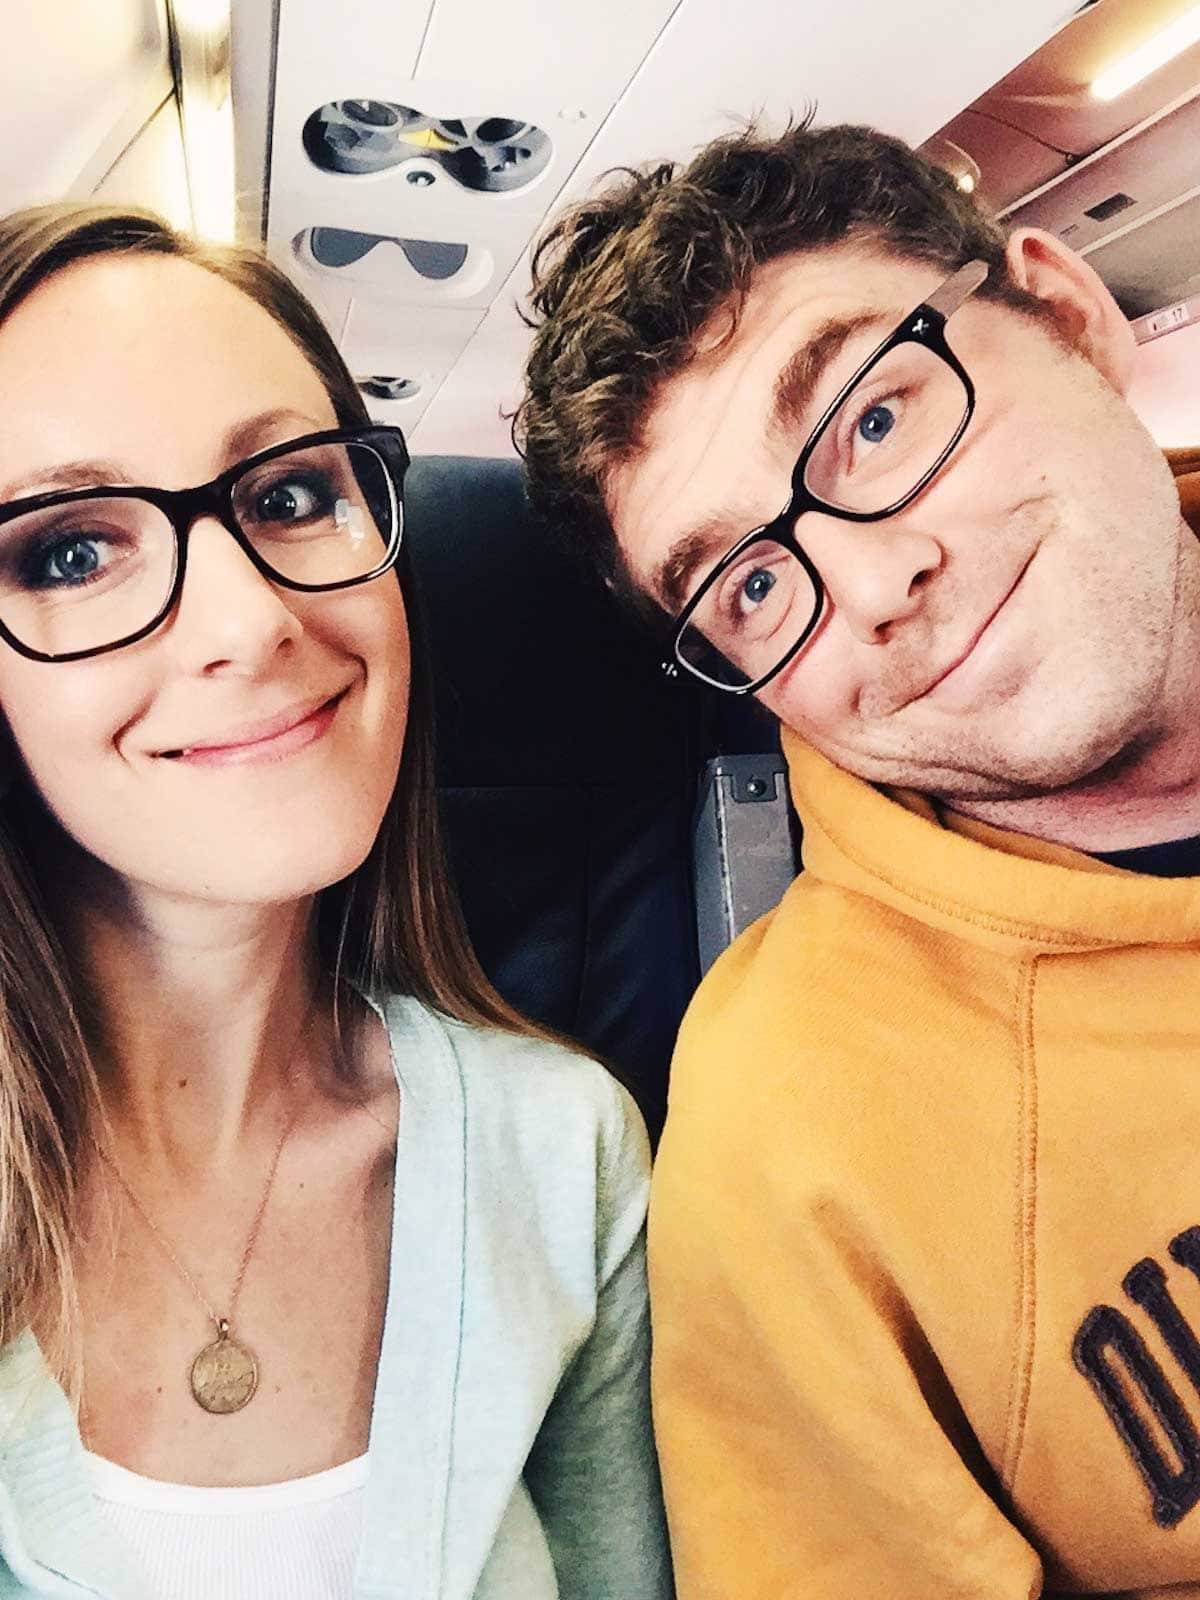 Man and woman on an airplane.